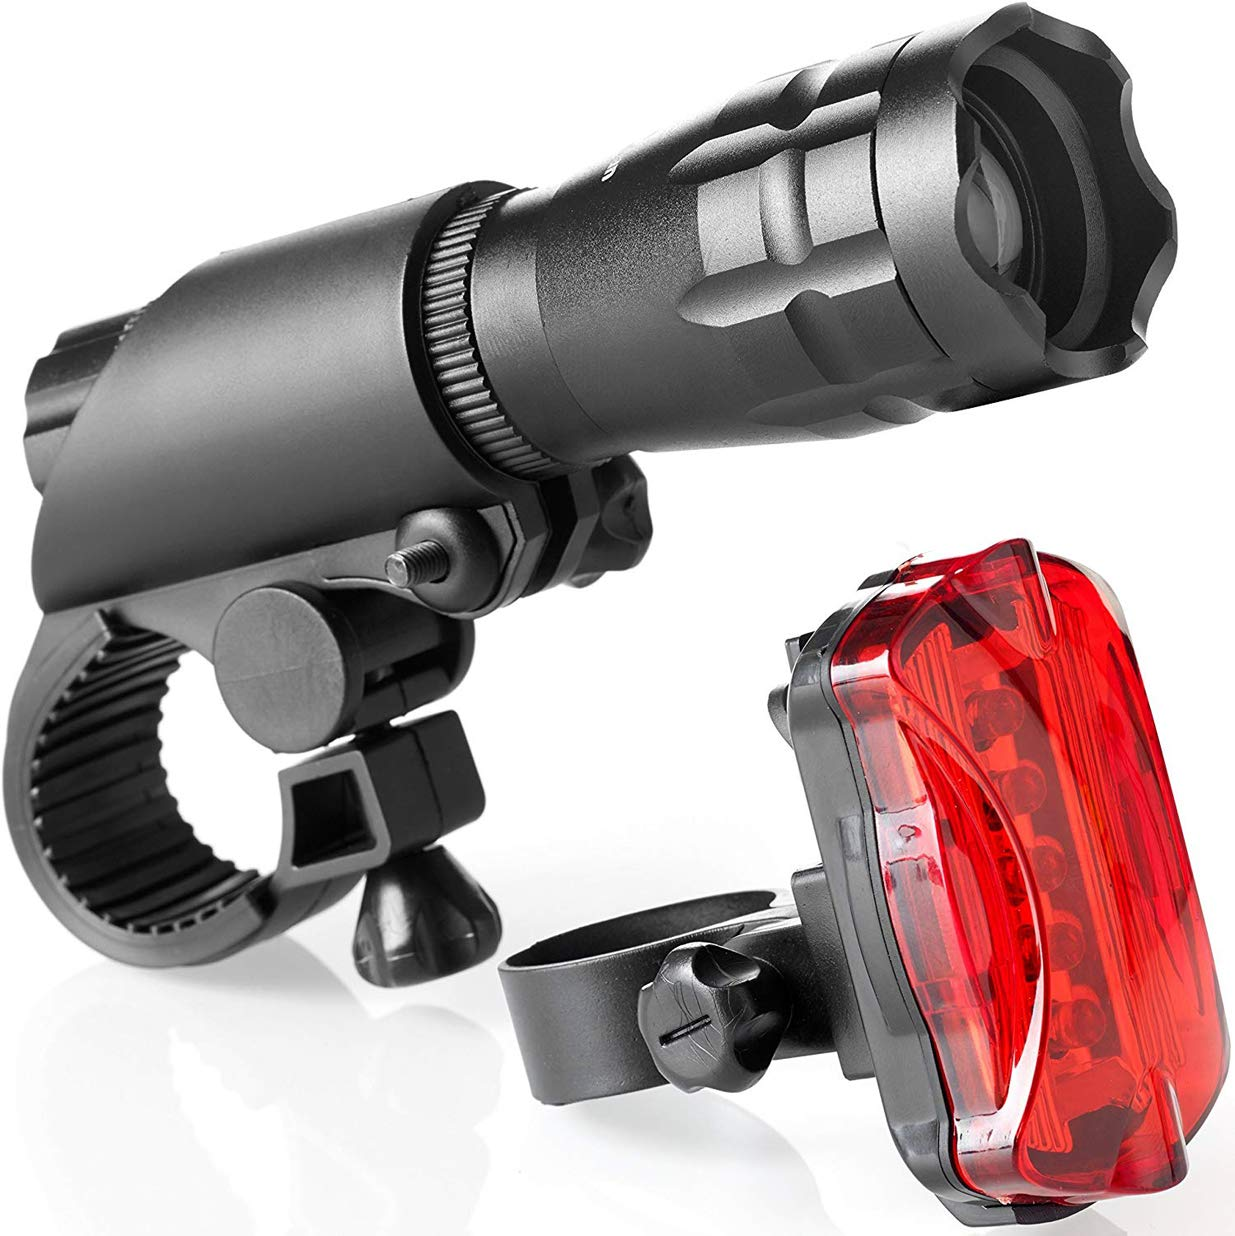 Bike Light Set - Super Bright LED Lights for Your Bicycle - Easy to Mount Headlight and Taillight with Quick Release System - Best Front and Rear Cycle Lighting - Fits All Bikes by Licttkvnon